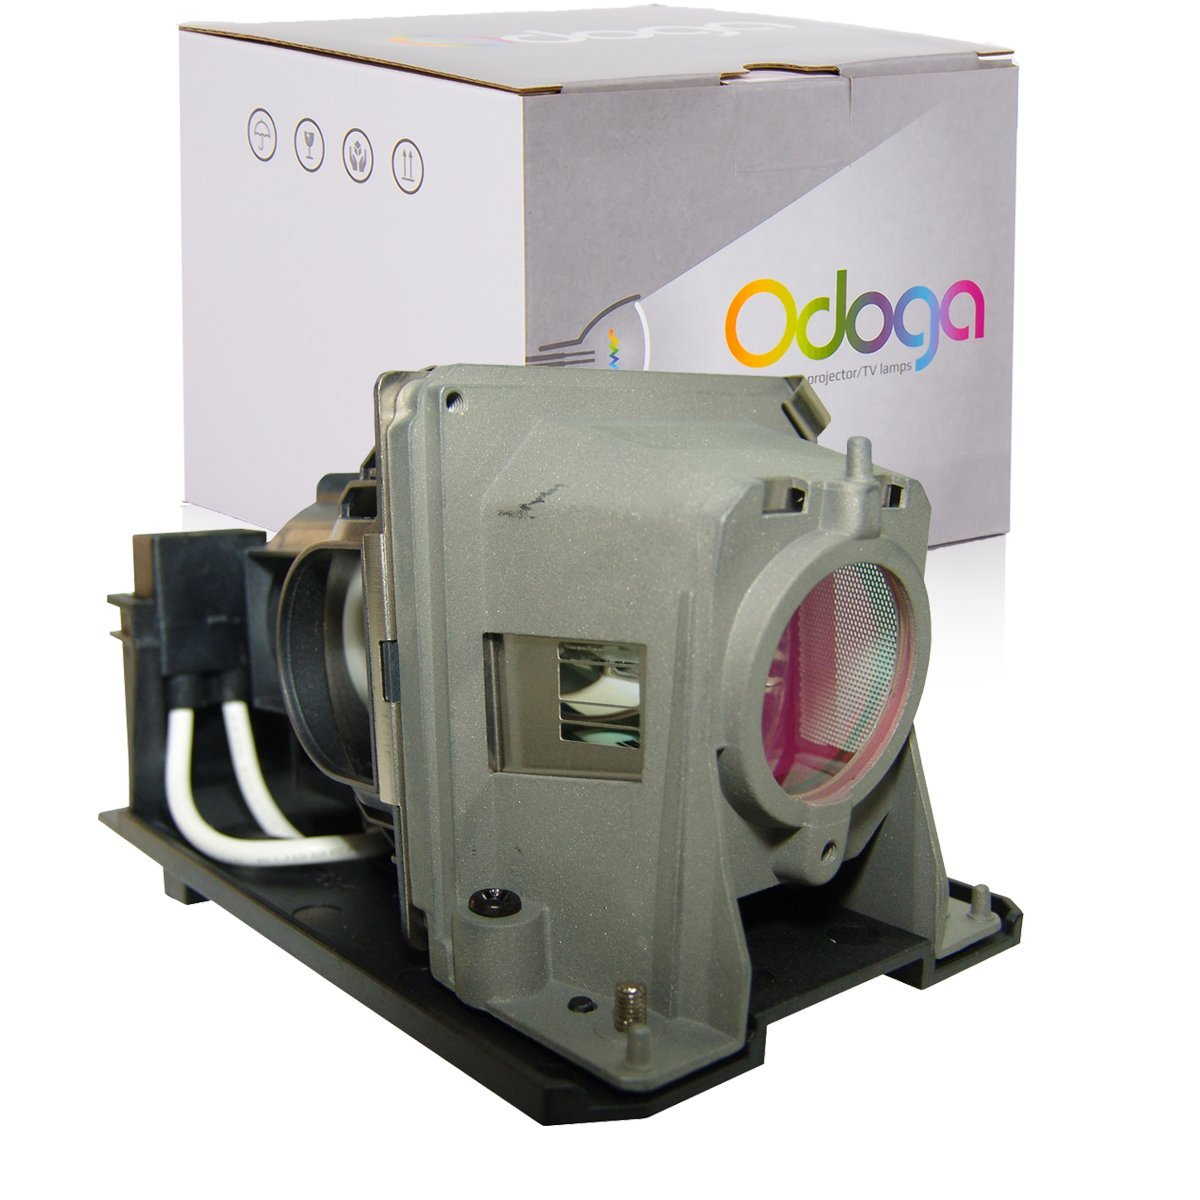 Odoga Nec VE281 VE281X VE282 VE282X NP-VE281 NP-VE281X NP-VE282 NP-VE282X V311W NP215G Compatible Projector Lamp